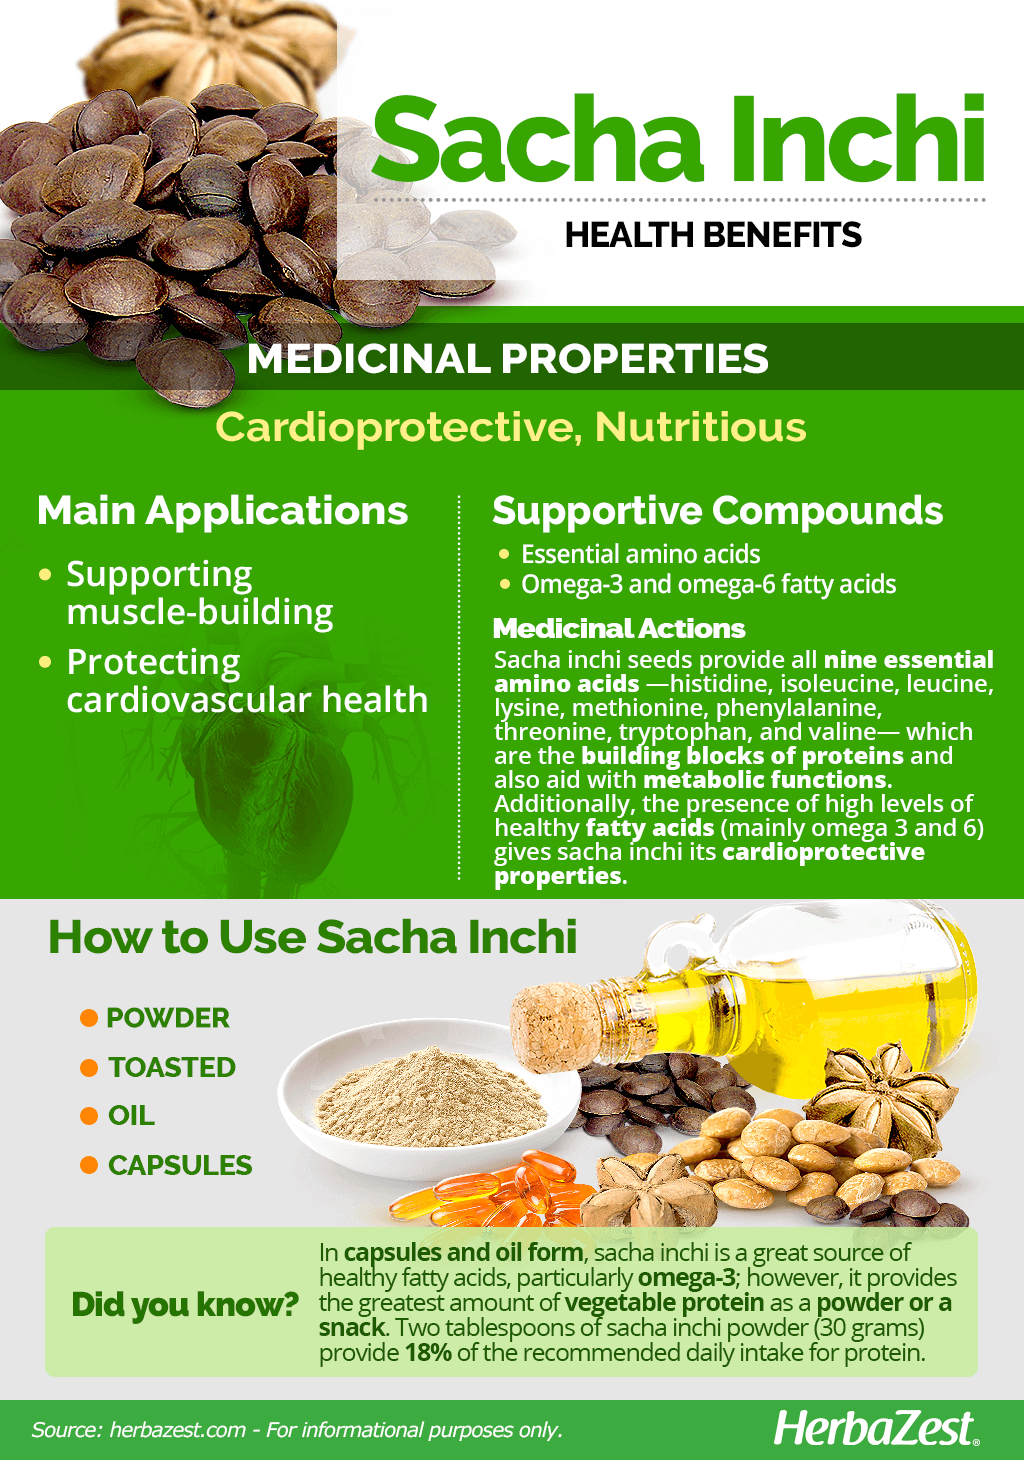 Sacha Inchi Benefits